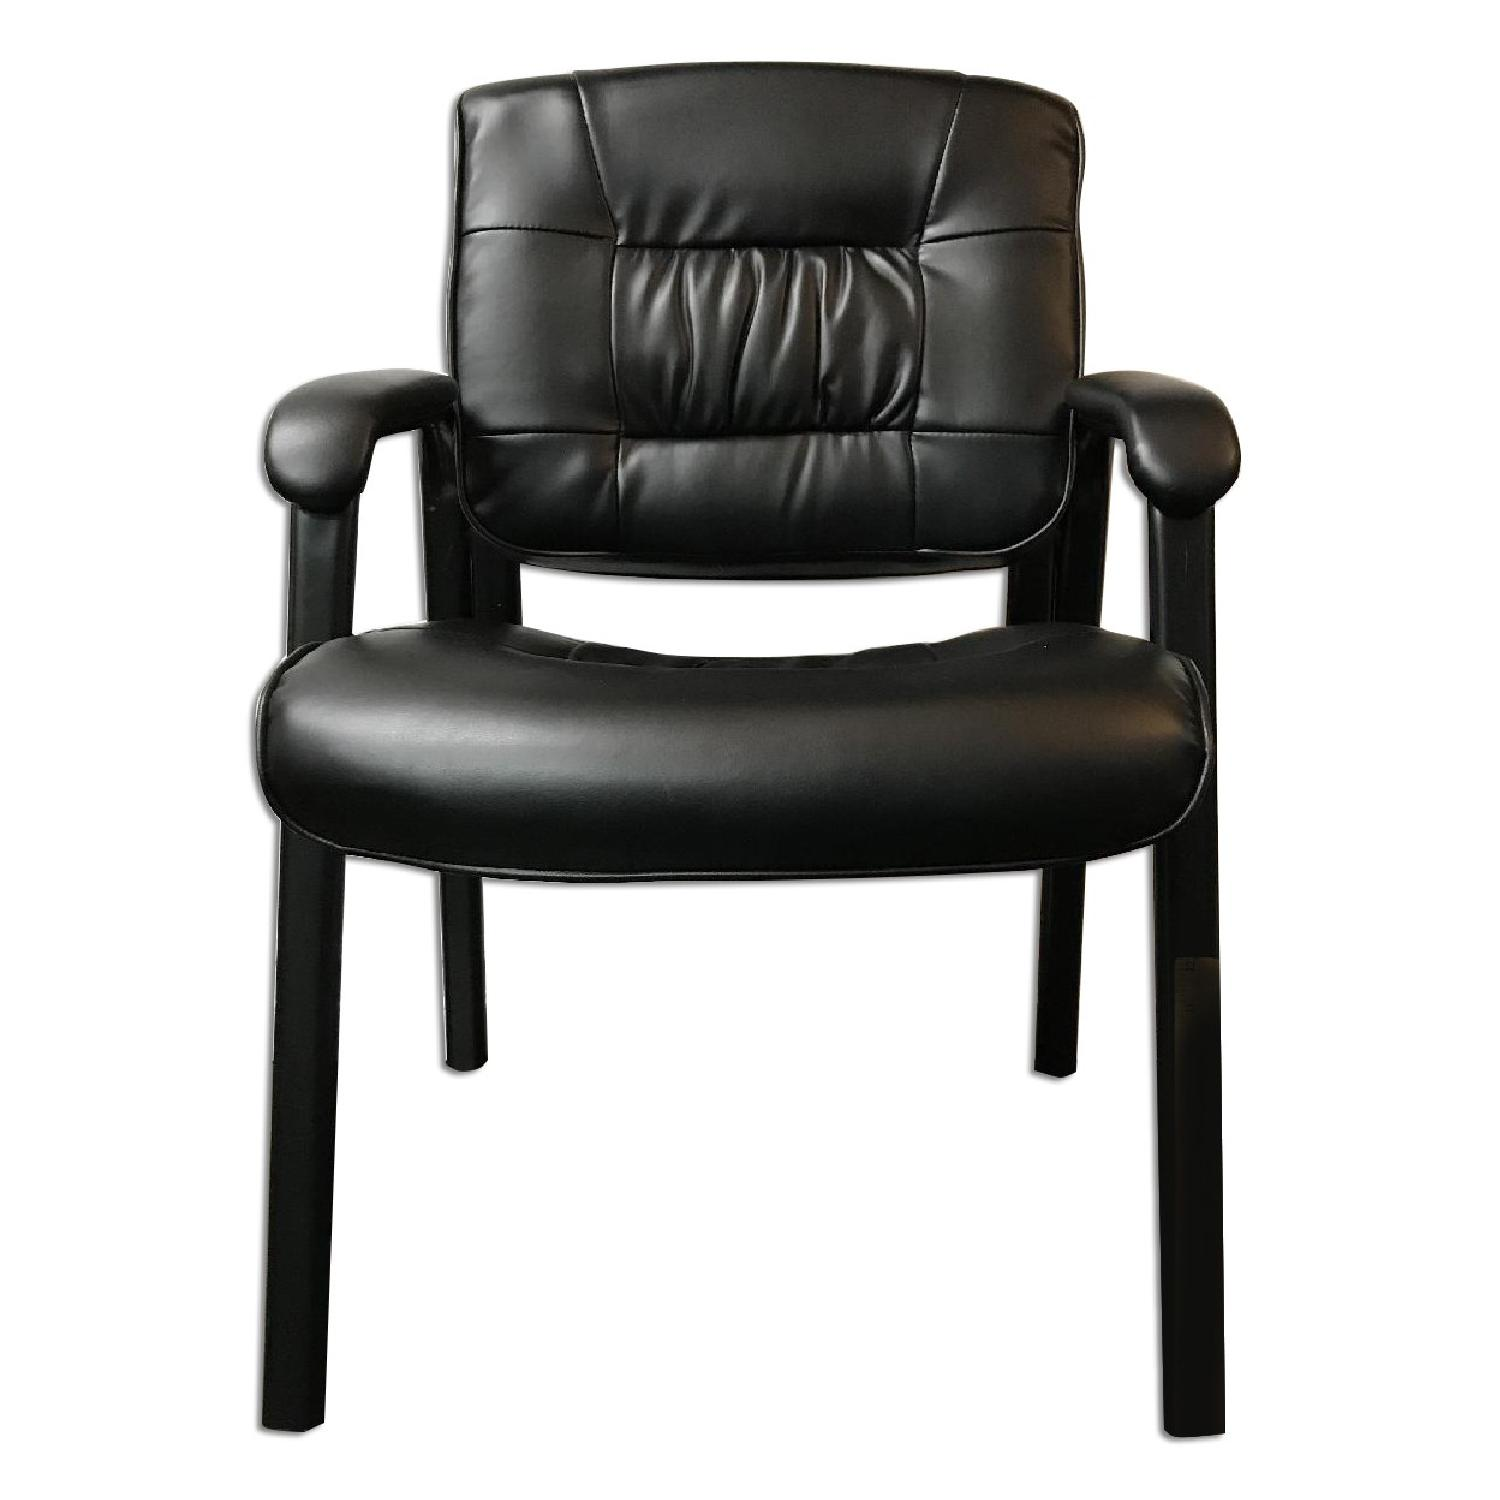 From the Source Leather Arm Chair AptDeco